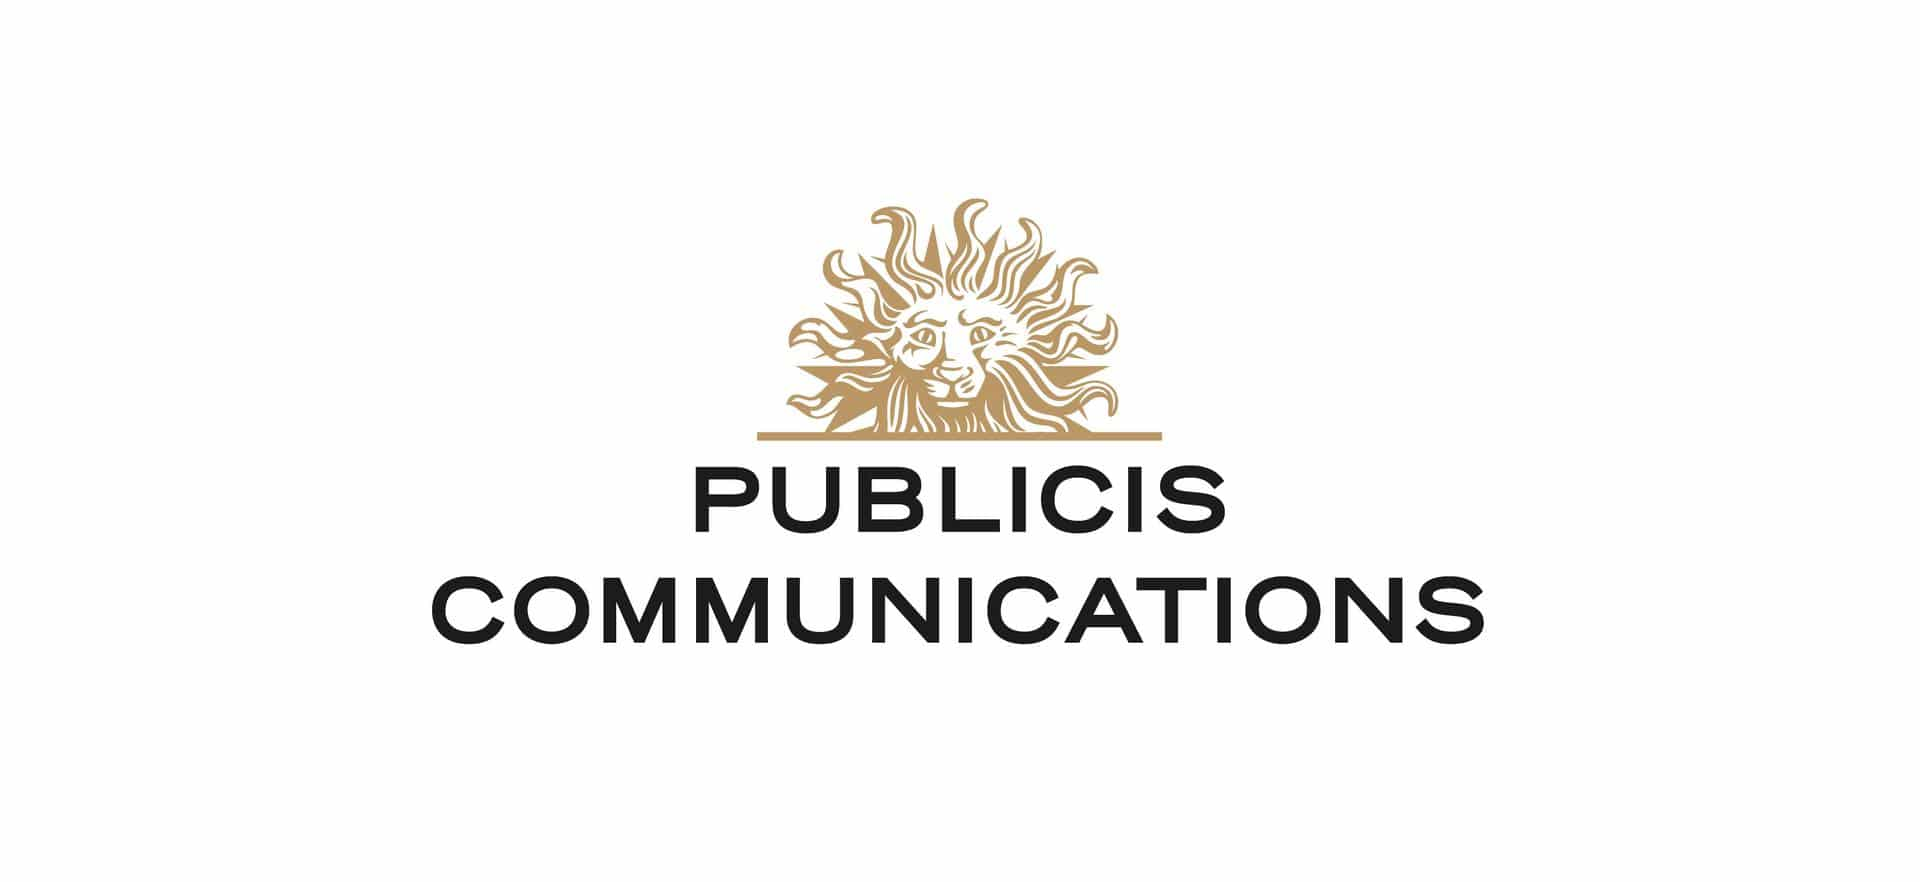 <strong>Publicis Worldwide</strong><br /> www.publicis.com<br /> » Regional CEOs<br /> Pedro Simko<br /> CEO Western Europe<br /> pedro.simko@publicis.com<br /> Tomasz Pawlikowski<br /> CEO Central & Eastern Europe<br /> tomasz.pawlikowski@publicis.pl<br /> » IAC Representative<br /> Anthony Gibson<br /> CEO Portugal & Morocco<br /> anthony.gibson@publicisone.com<br />